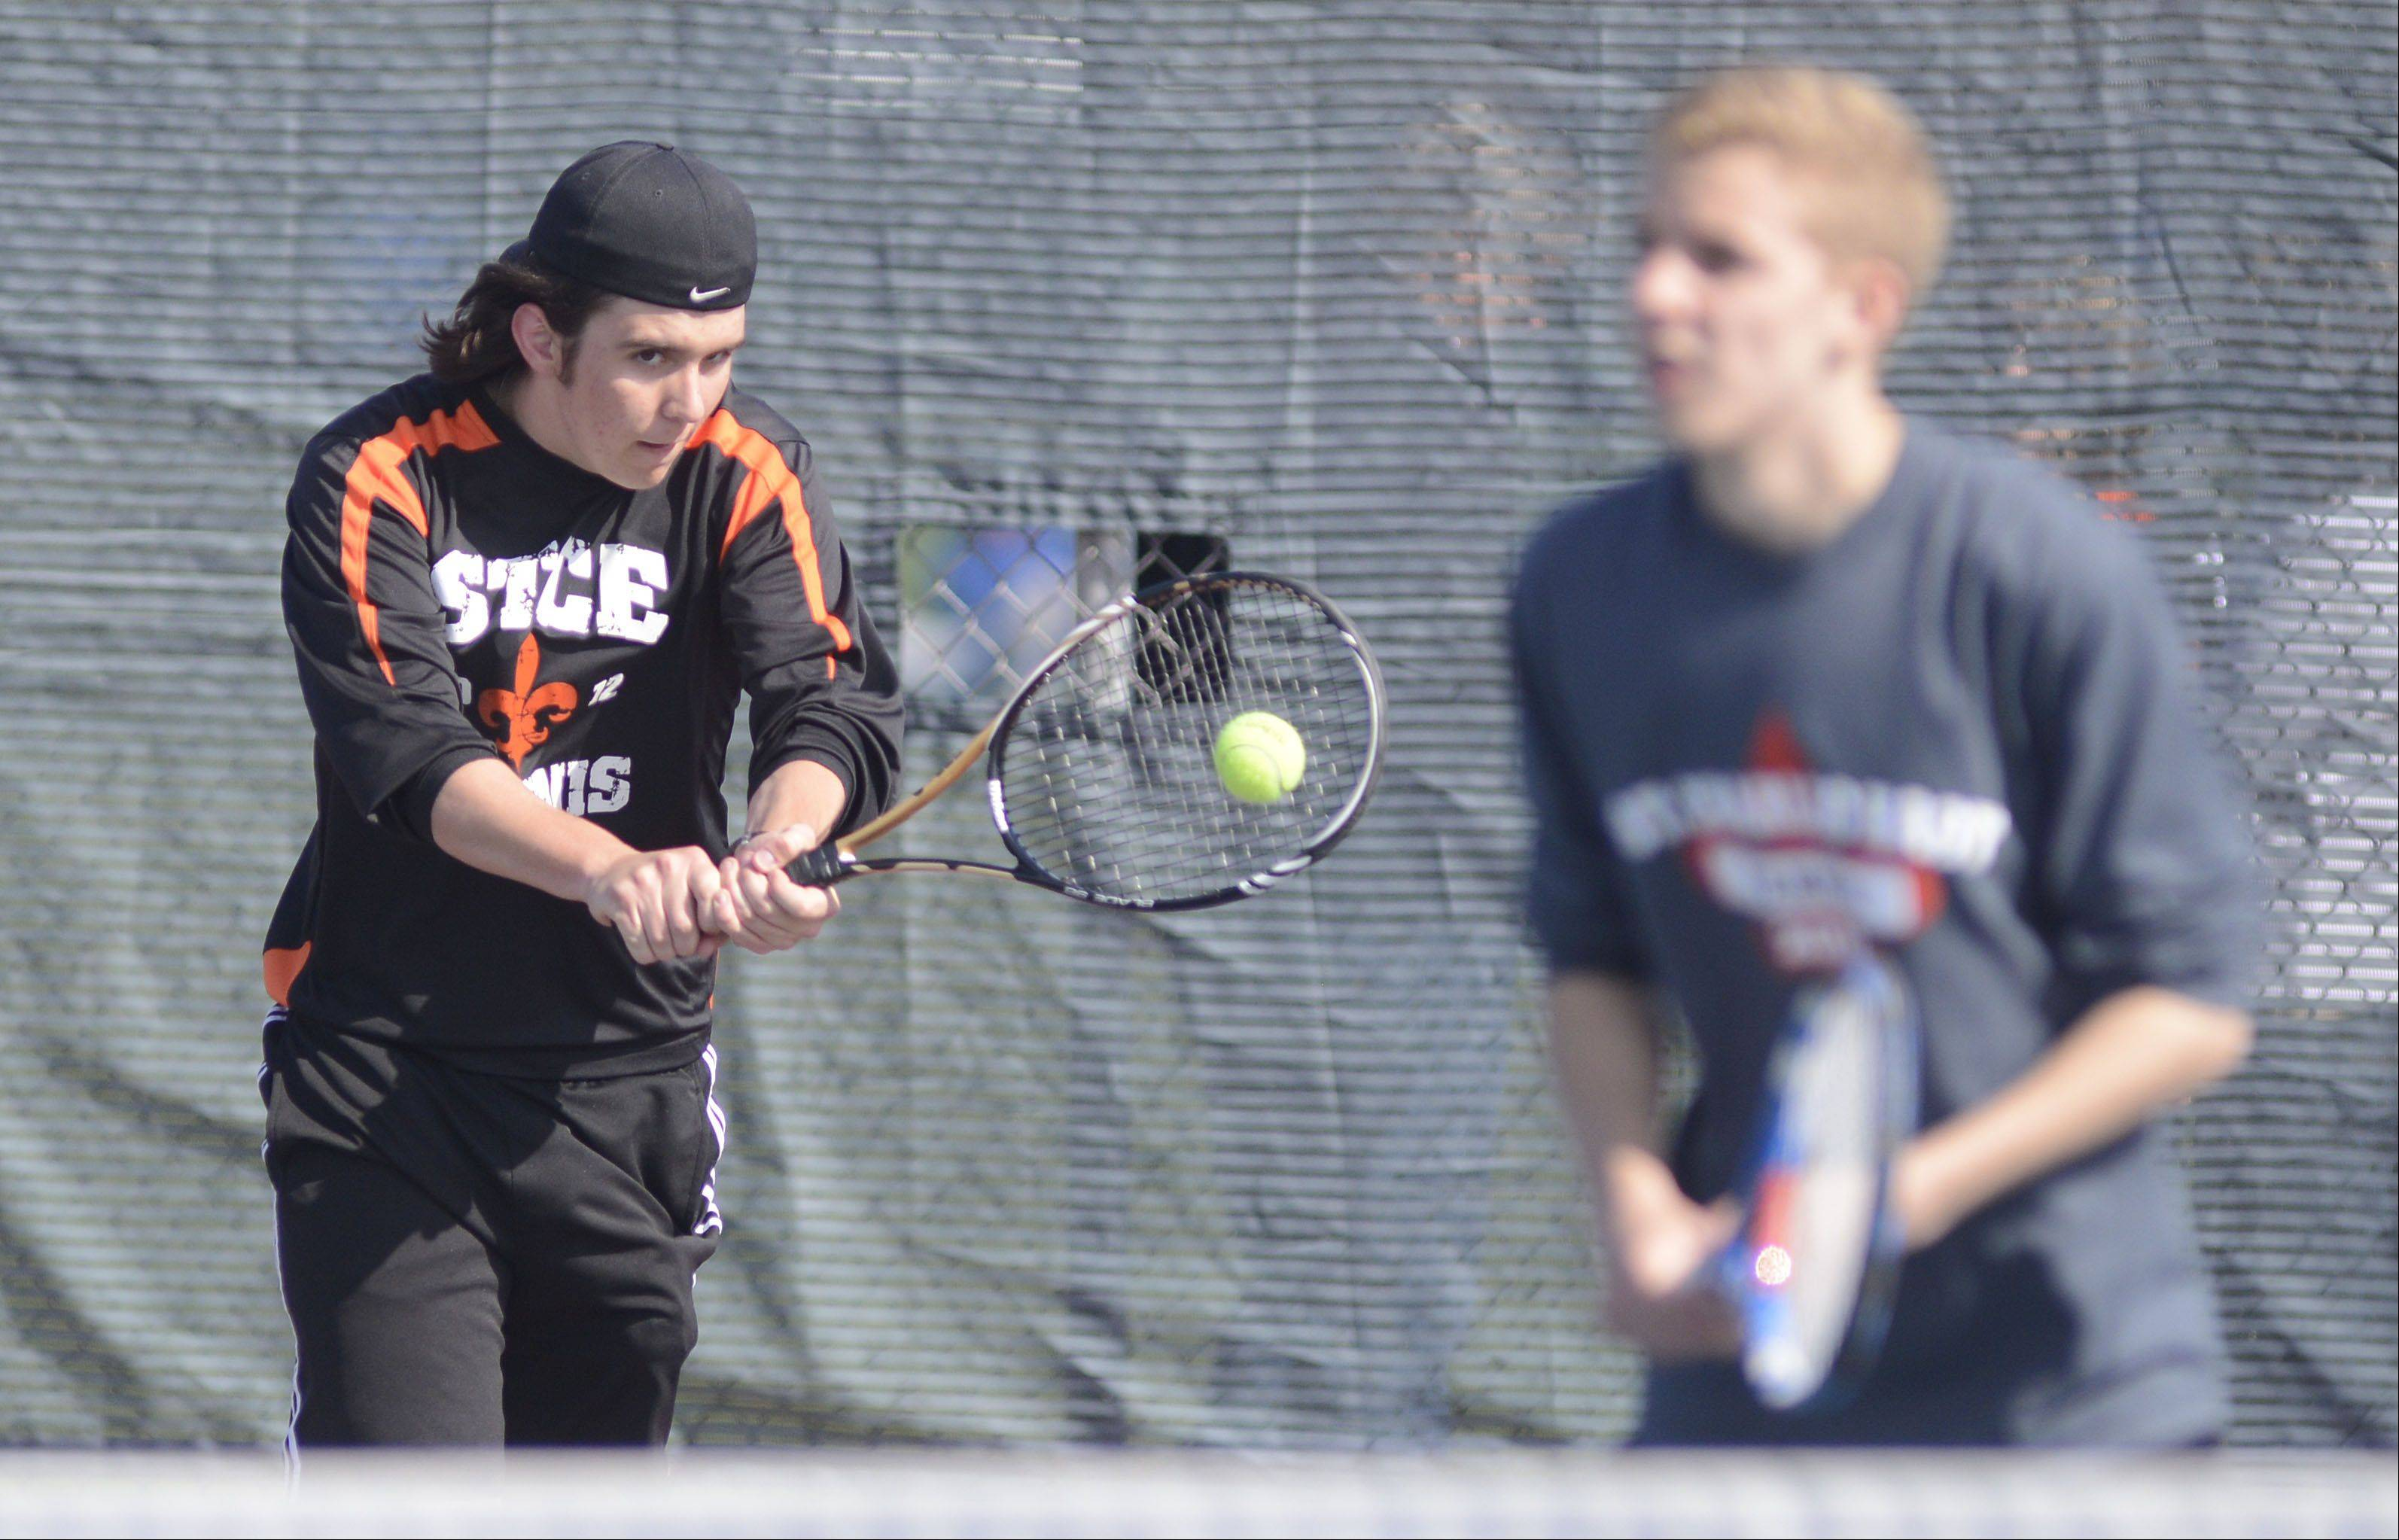 St. Charles East's George Spoerl, left, and teammate Matt McCarthy in first doubles match vs. Glenbard West's Kenny Reick and Jack Kellenberger at West Aurora High School on Saturday, April 27.